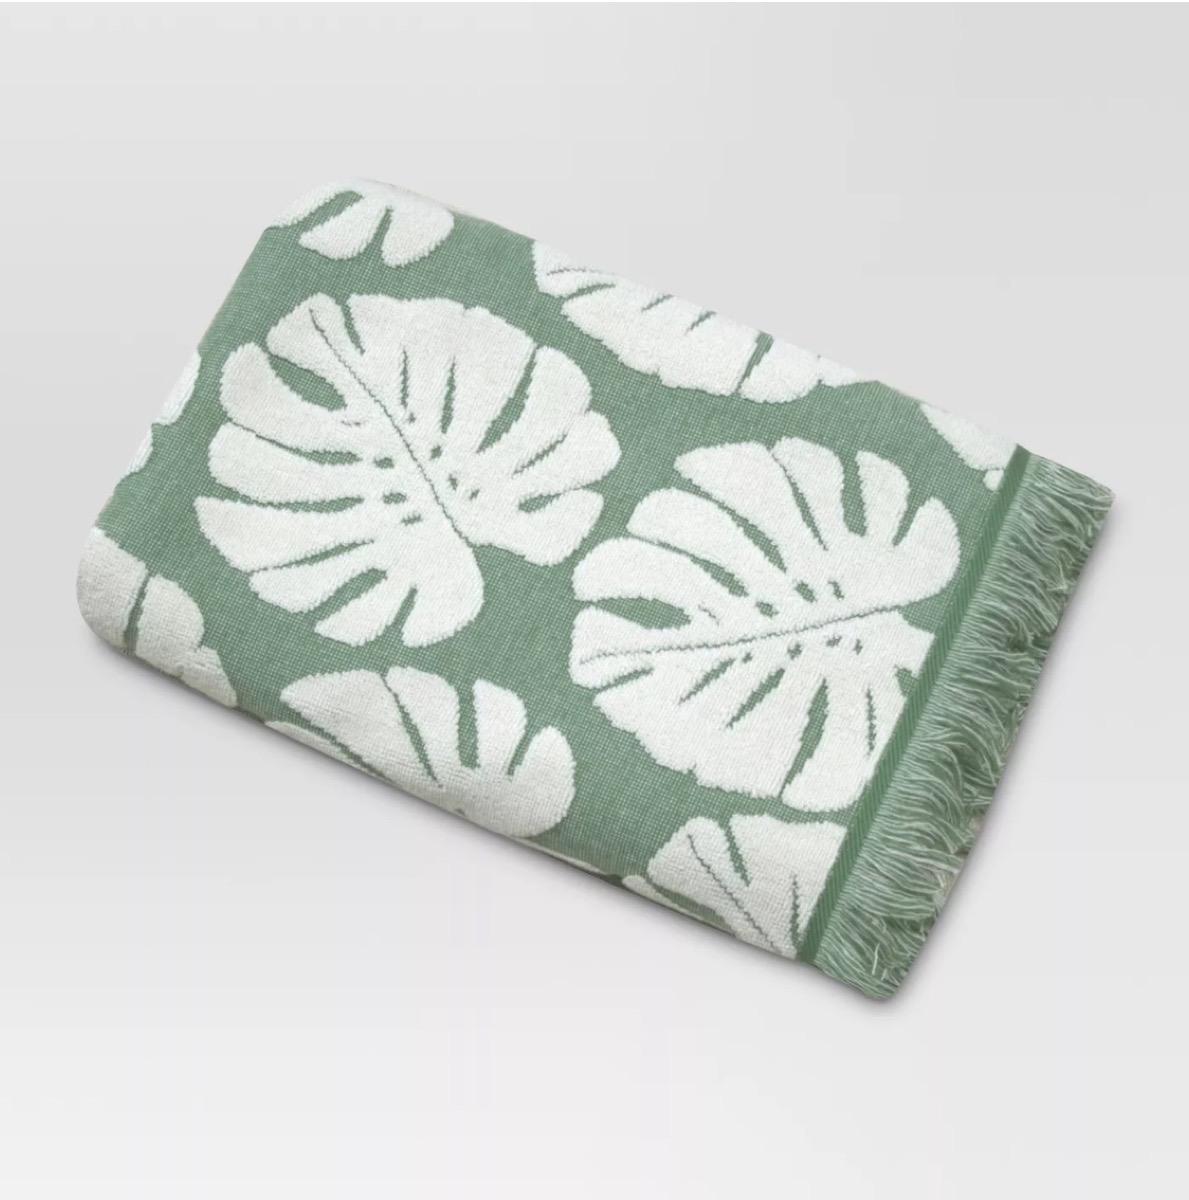 green bath towel with white leaves on it, bathroom accessories